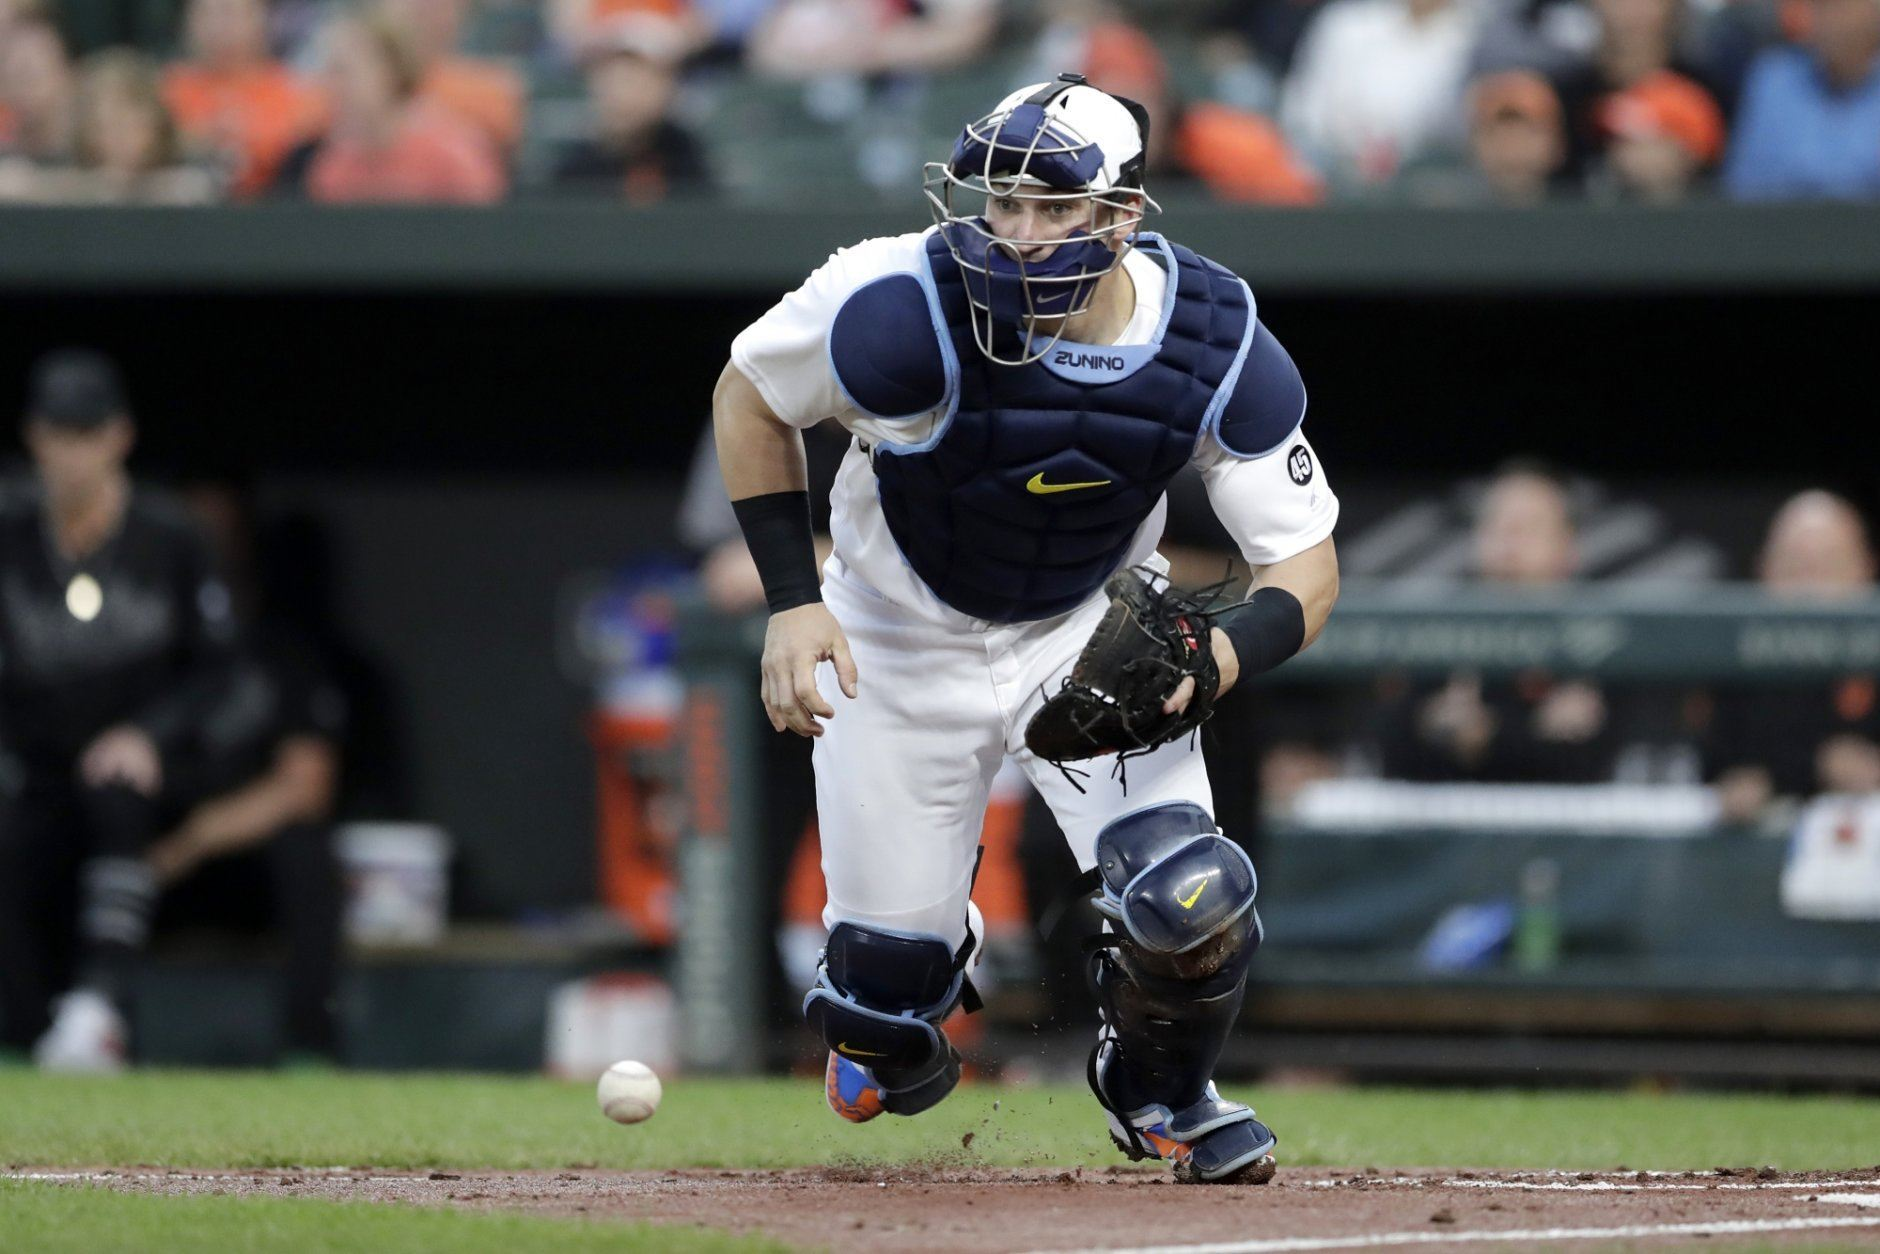 Tampa Bay Rays catcher Mike Zunino eyes Baltimore Orioles' Jonathan Villar on third base after blocking a throw from center fielder Kevin Kiermaier during the first inning of a baseball game, Friday, Aug. 23, 2019, in Baltimore. (AP Photo/Julio Cortez)